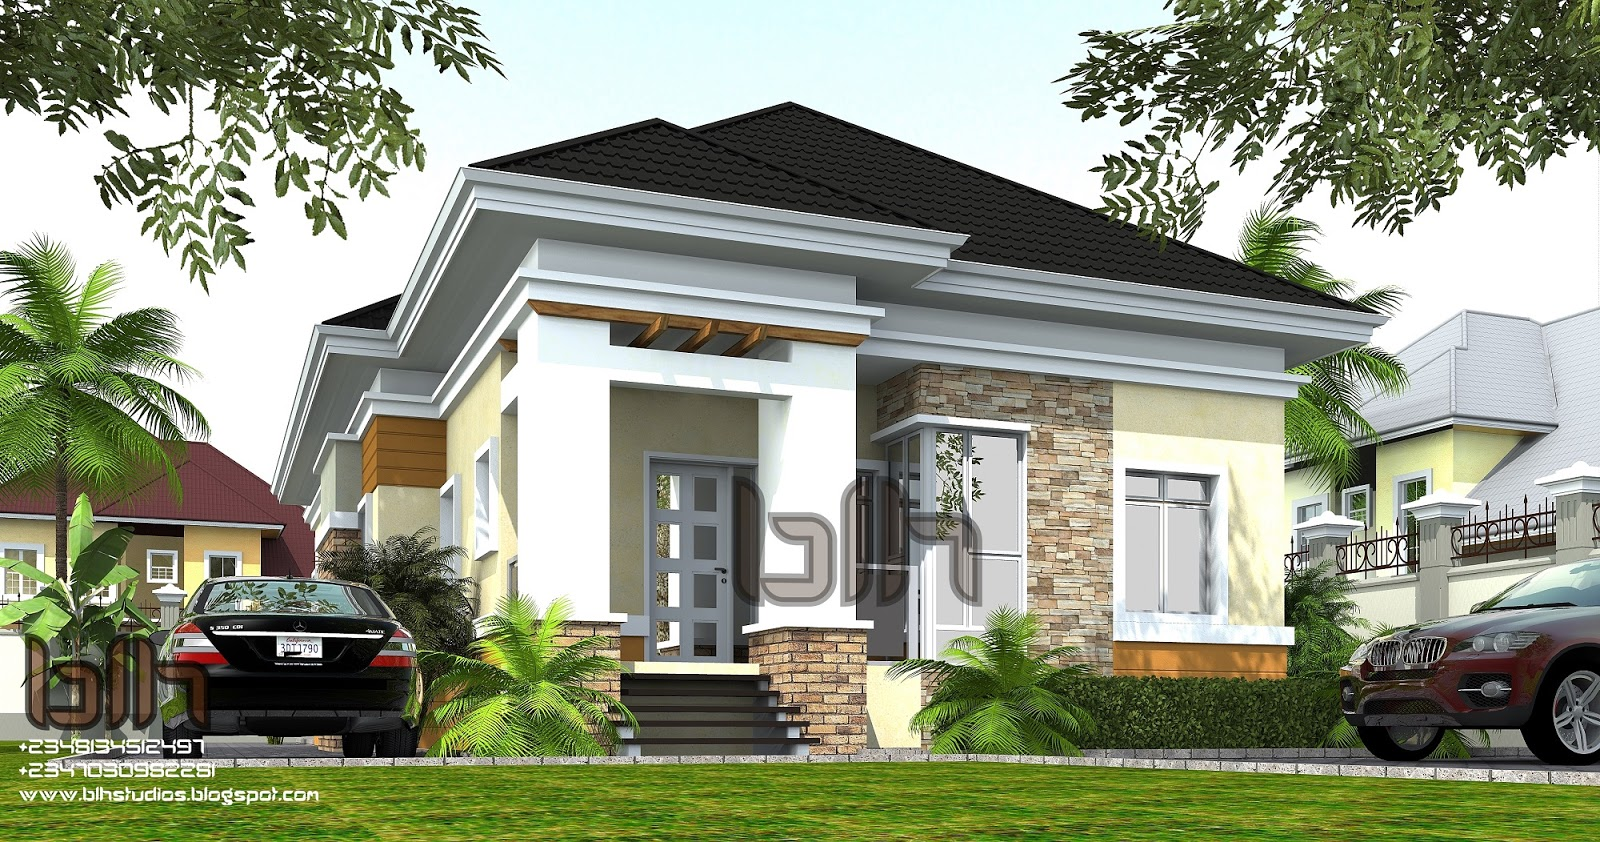 Architectural Designs By Blacklakehouse 3 Bedroom